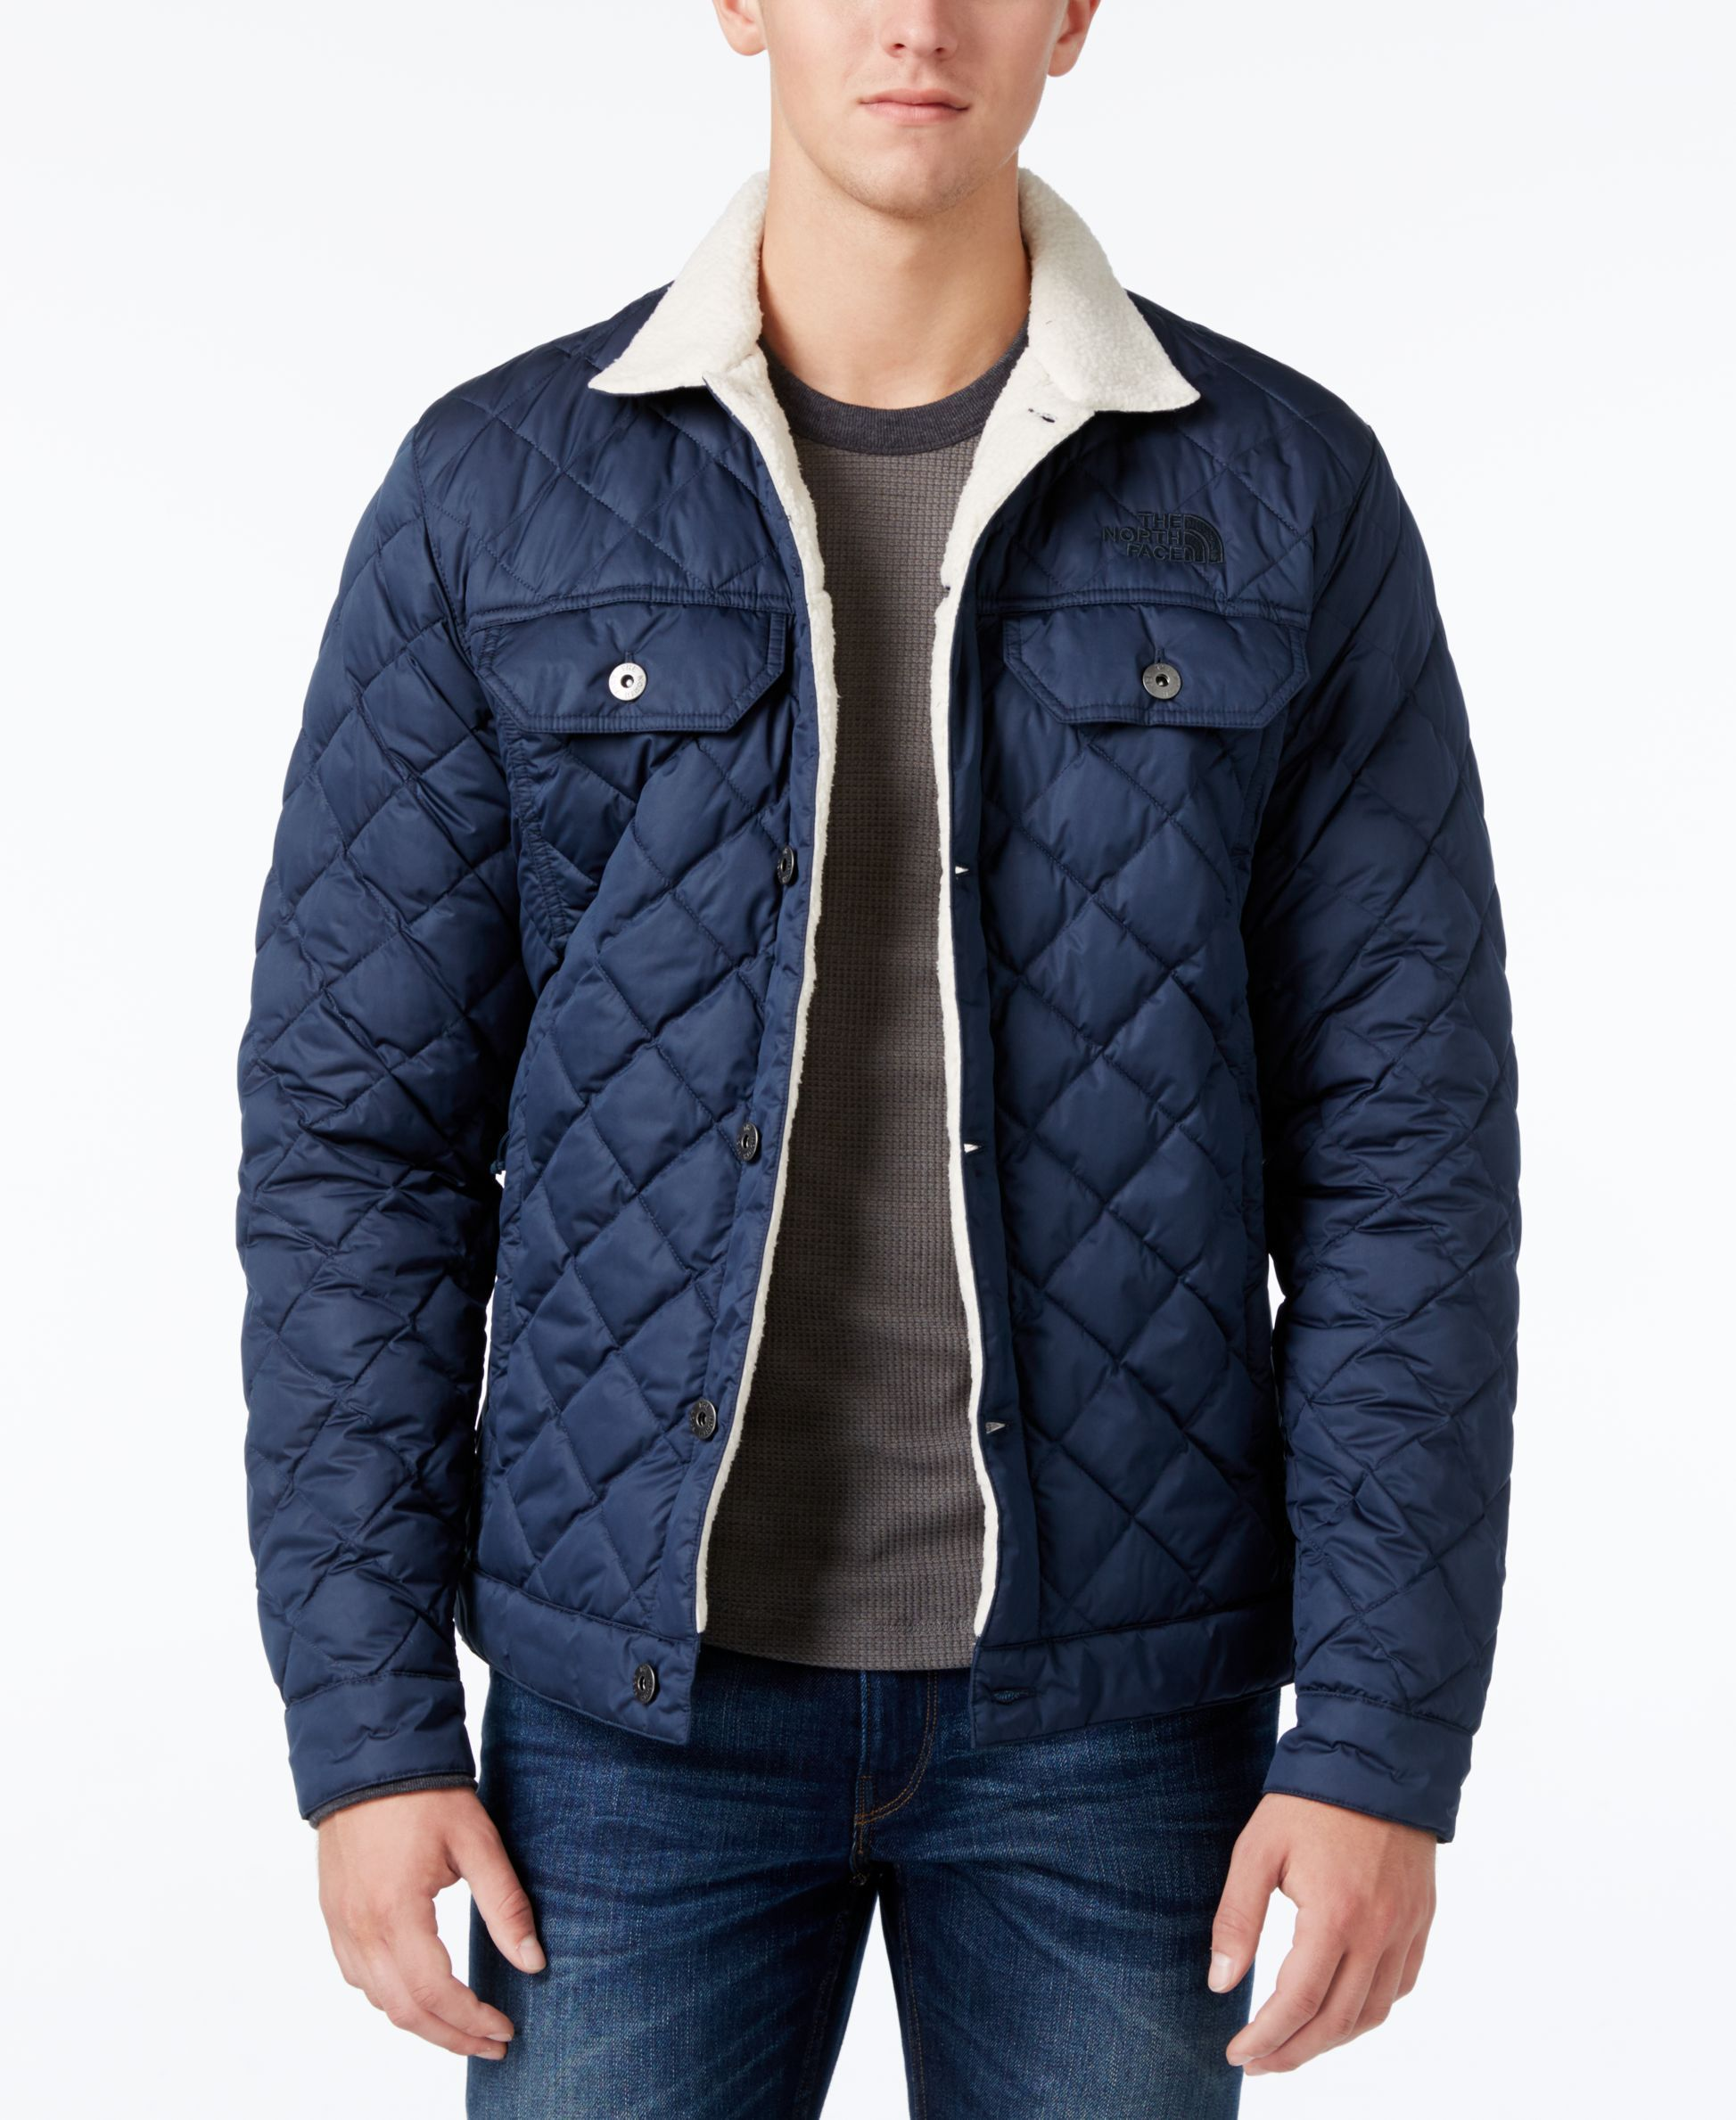 1233394ad The North Face Men's Thermoball Jacket With Sherpa Lining | Clothing ...